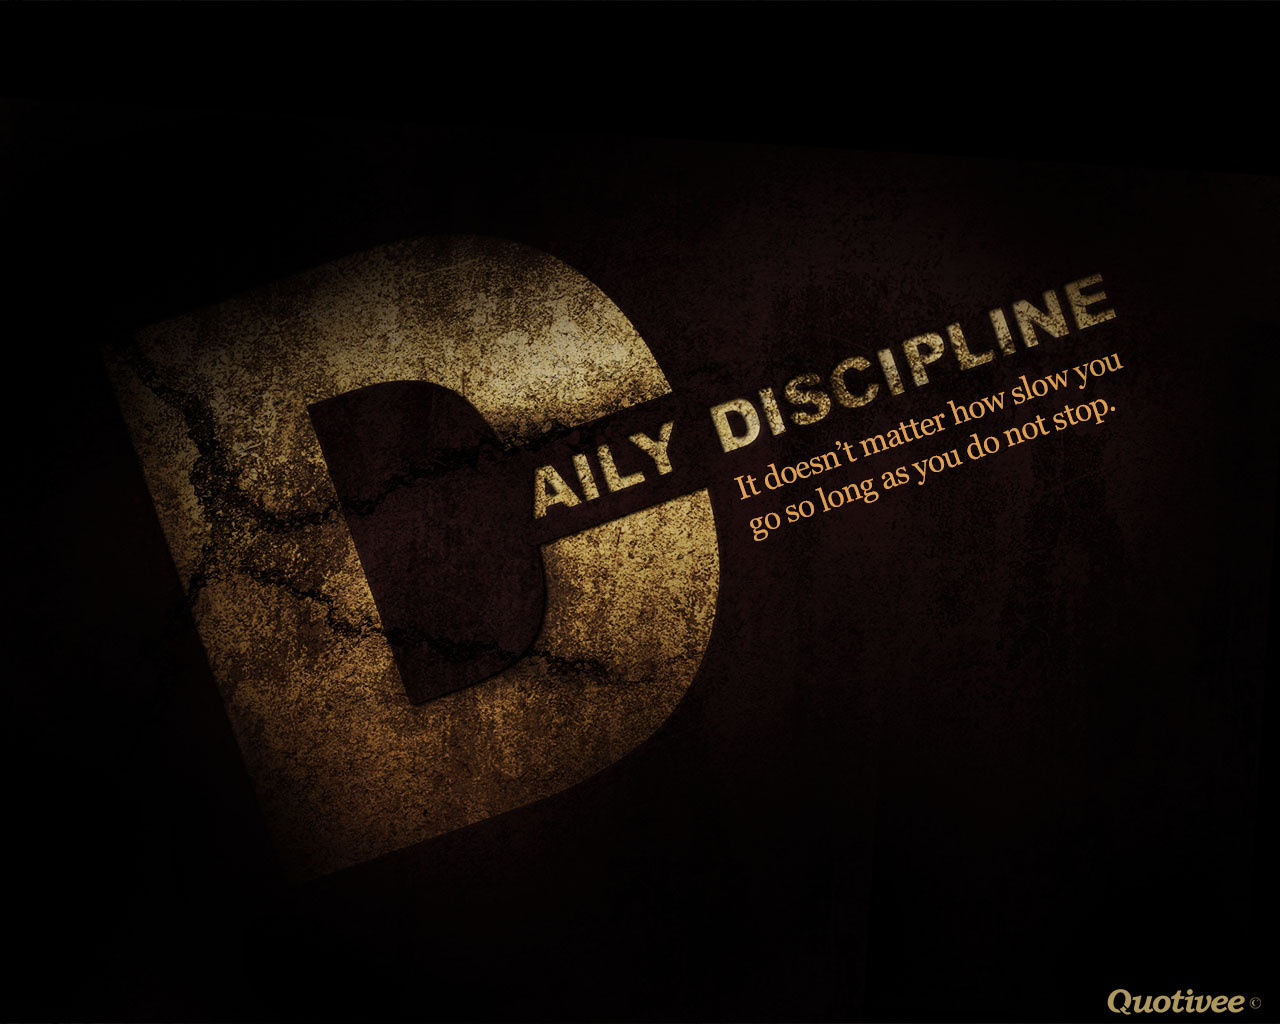 Daily Discipline - Inspirational Quotes | Quotivee